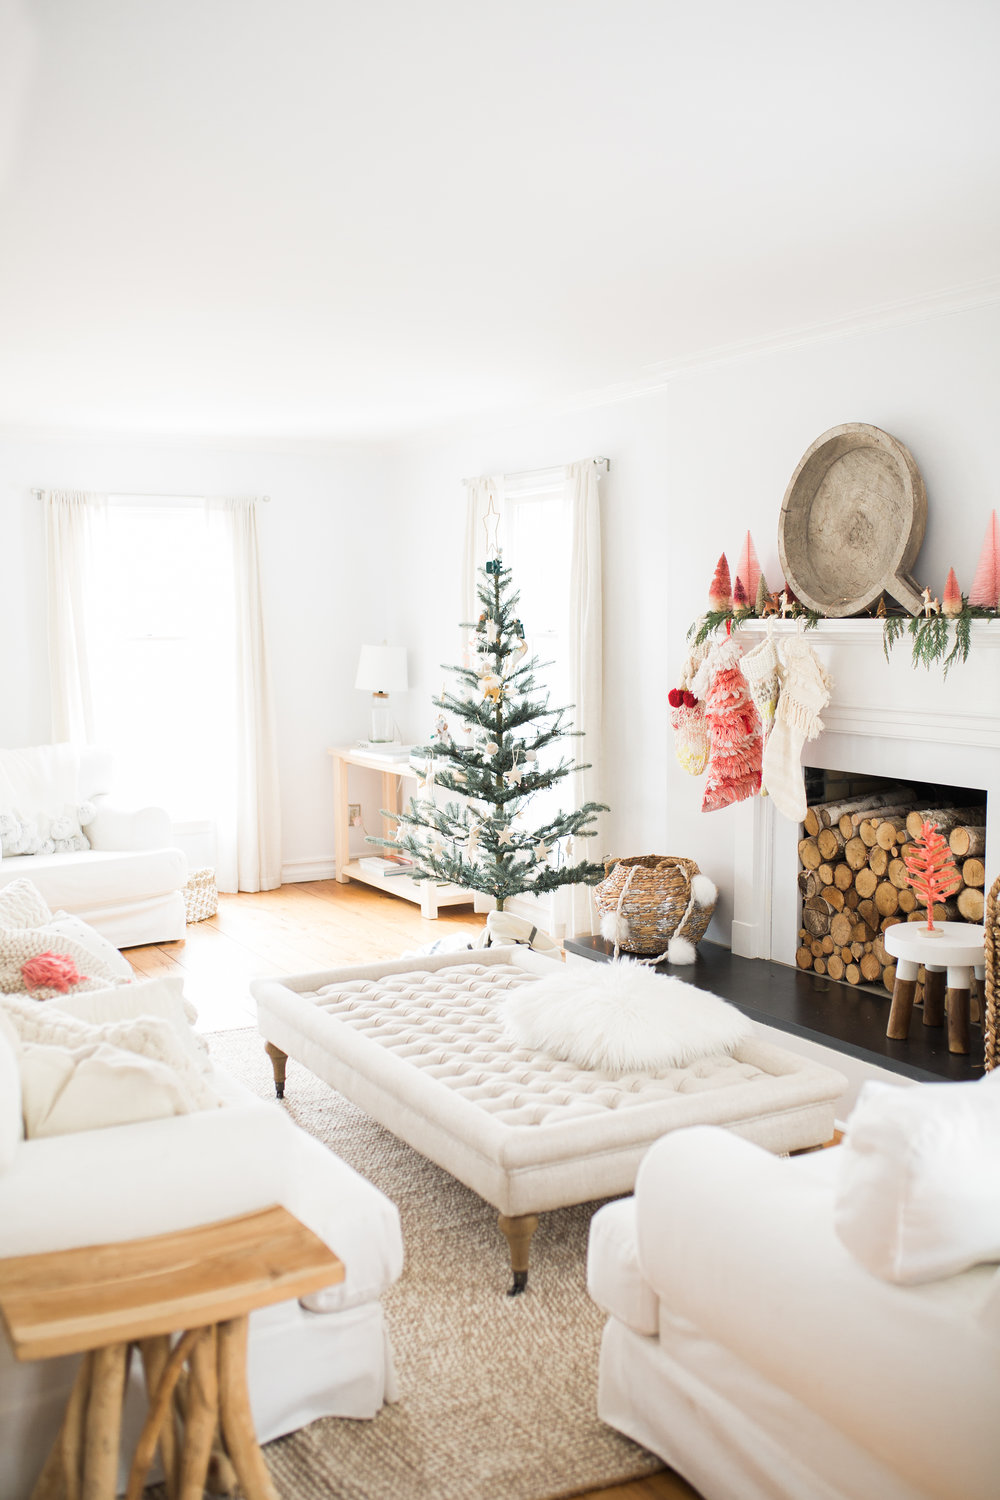 holidaydecor_18.jpg